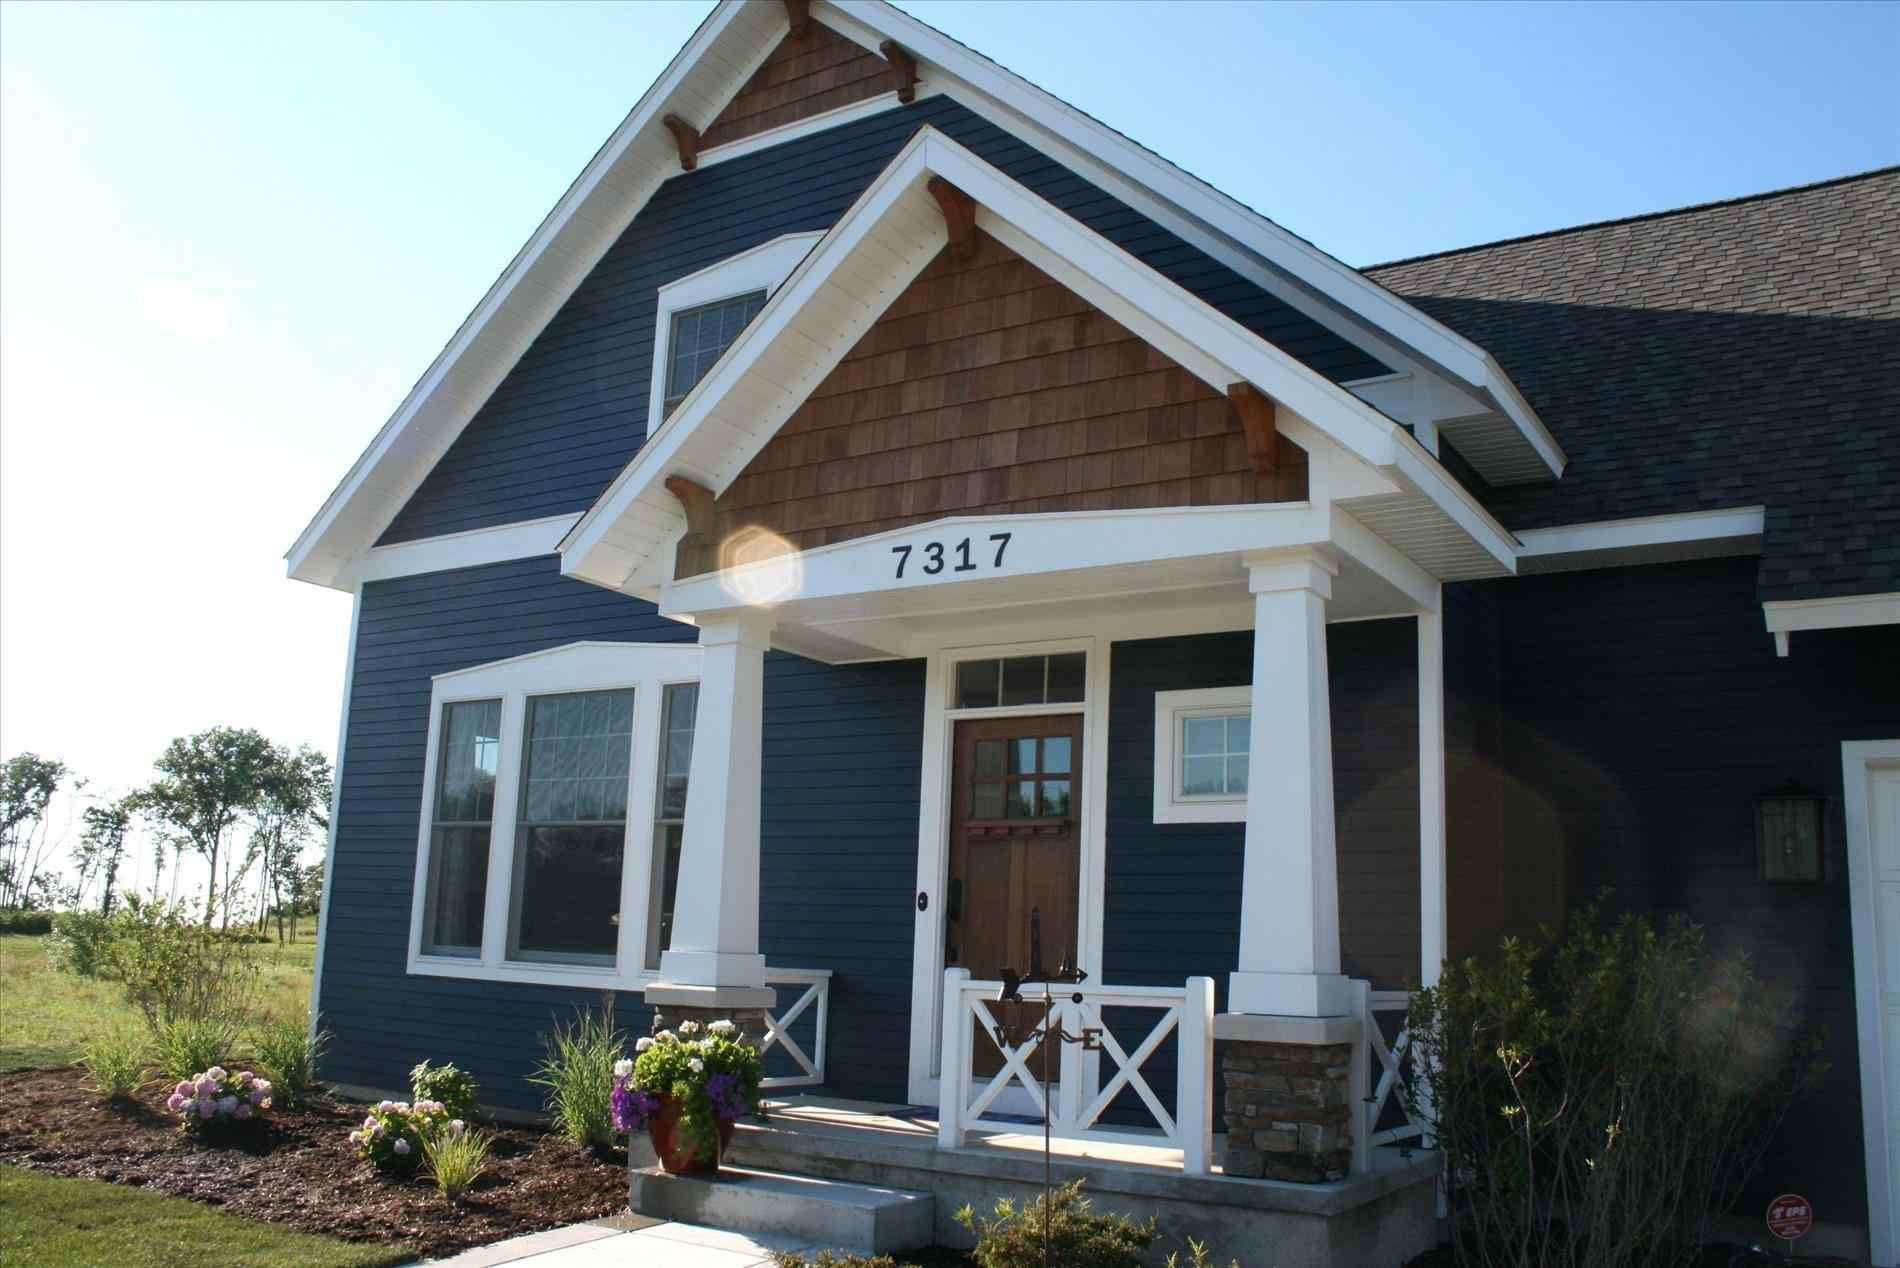 Blue exterior paint color schemes immaculately kept house ...